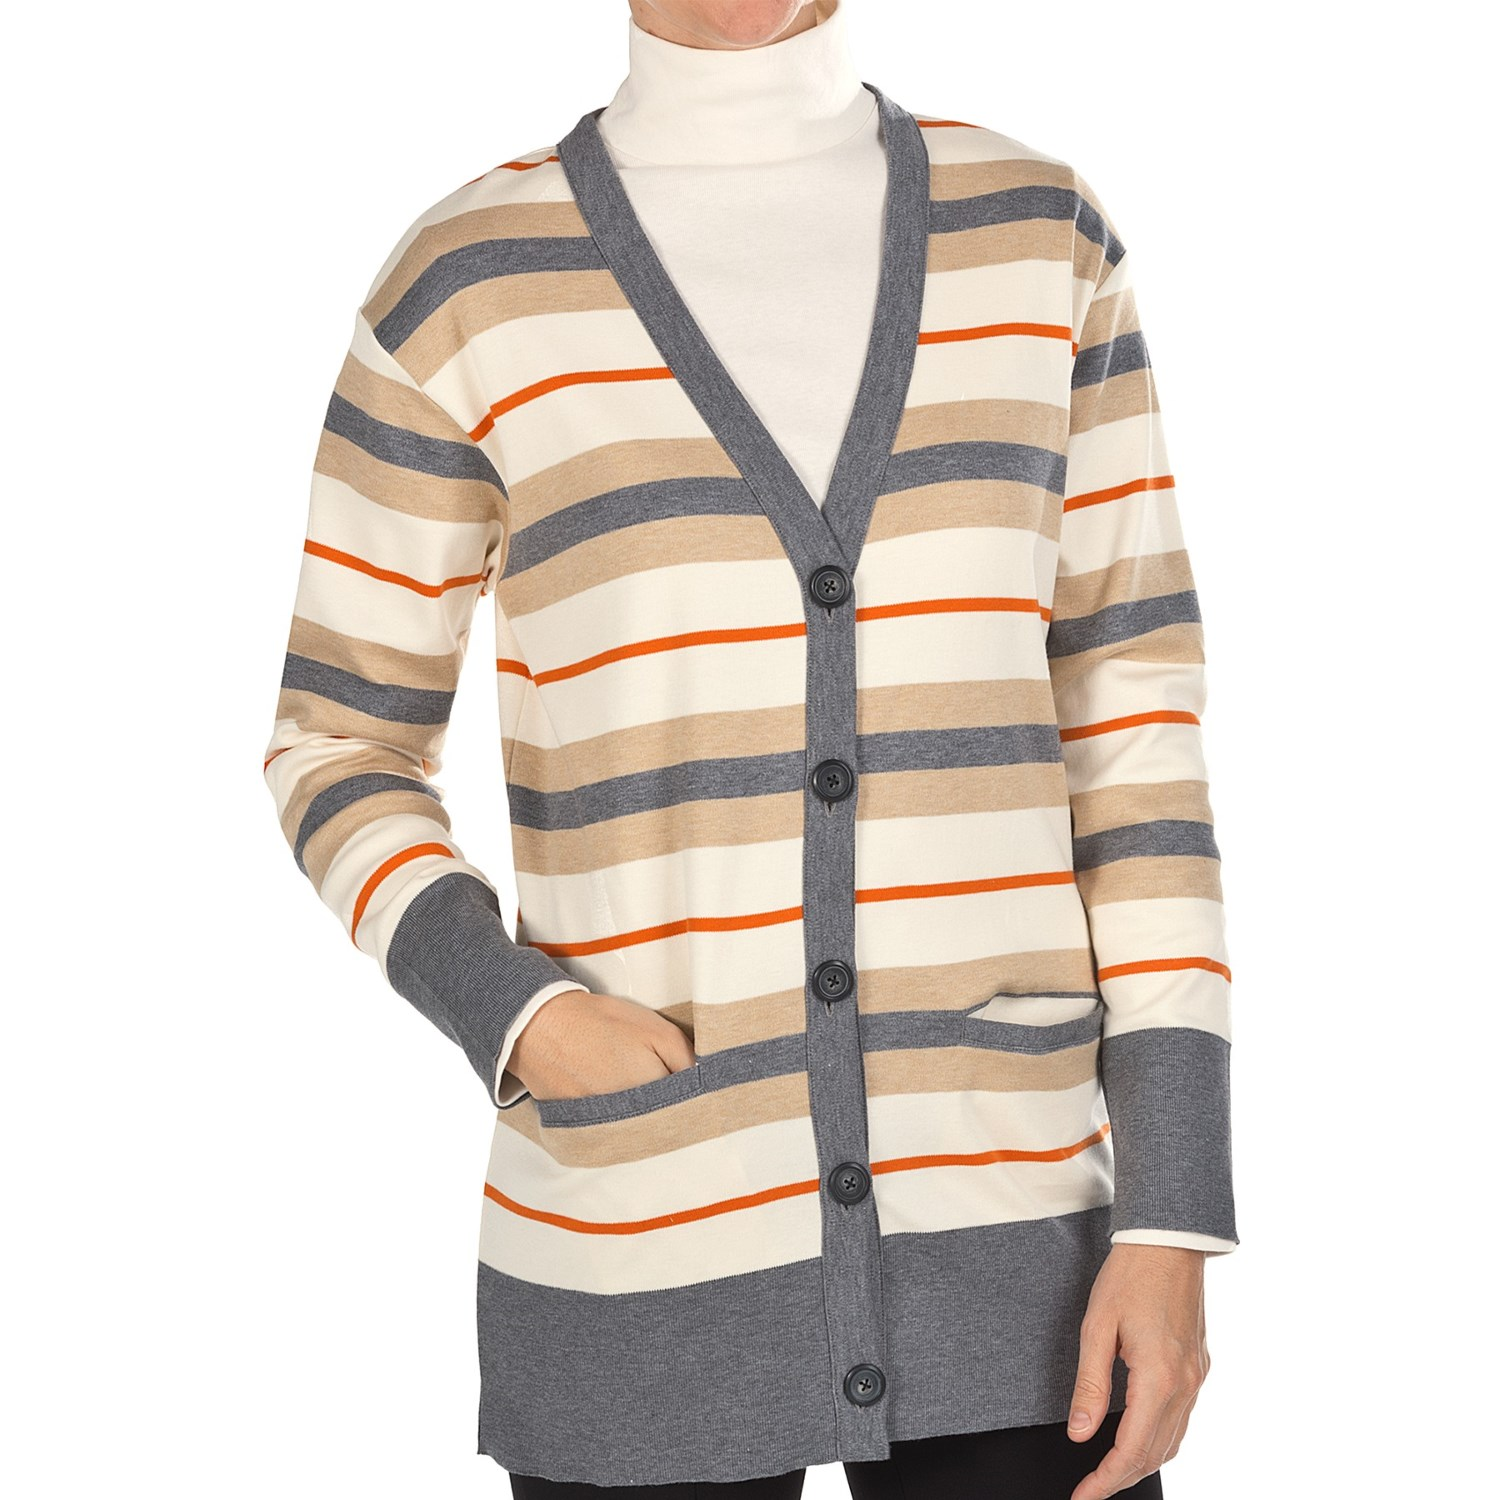 Shop Women's Striped Cardigan, Men's Striped Cardigan, Kids Striped Cardigan and more at Macy's. Macy's Presents: The Edit - A curated mix of fashion and inspiration Check It Out Free Shipping with $49 purchase + Free Store Pickup.